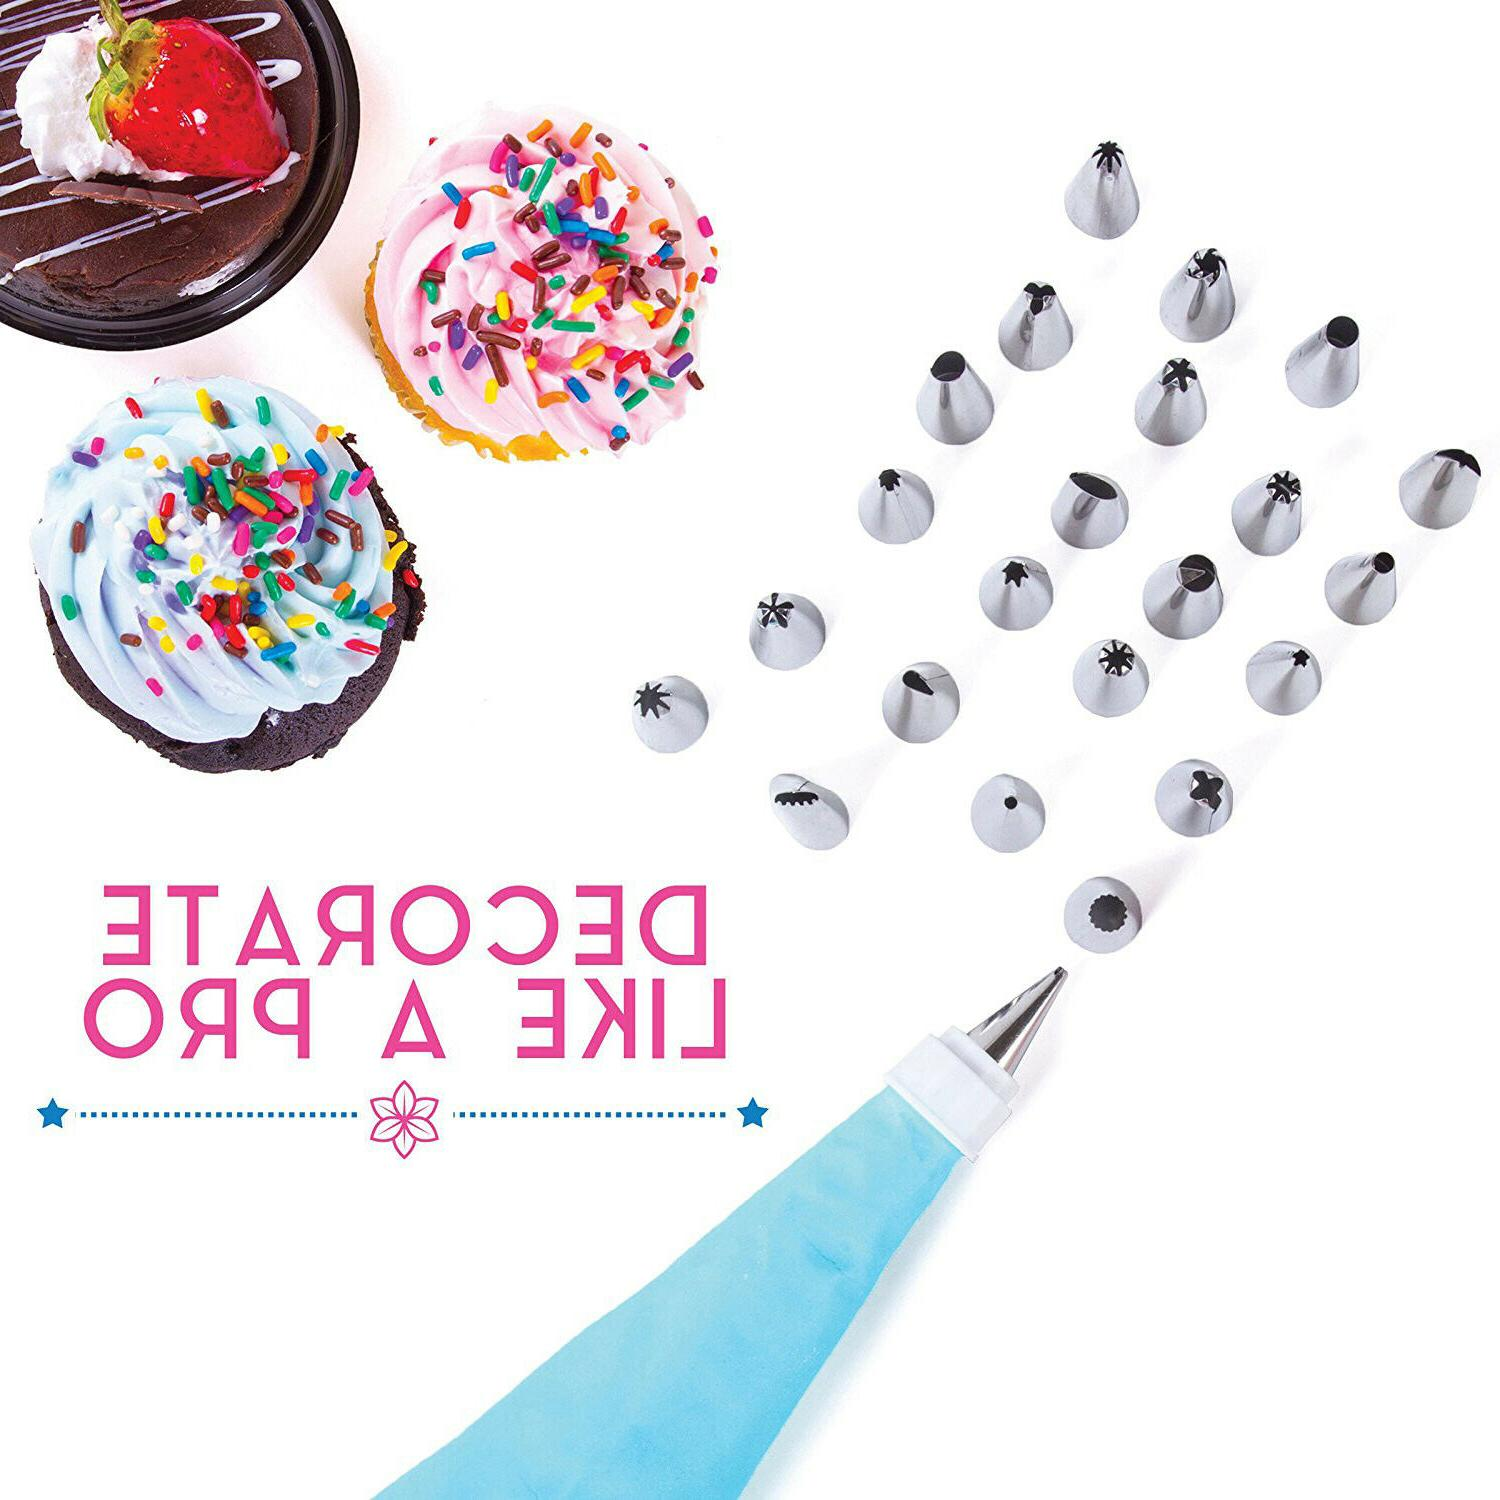 Cake Decorating Tools Kit 38 Tips Bags Nozzles Supplies Equipment